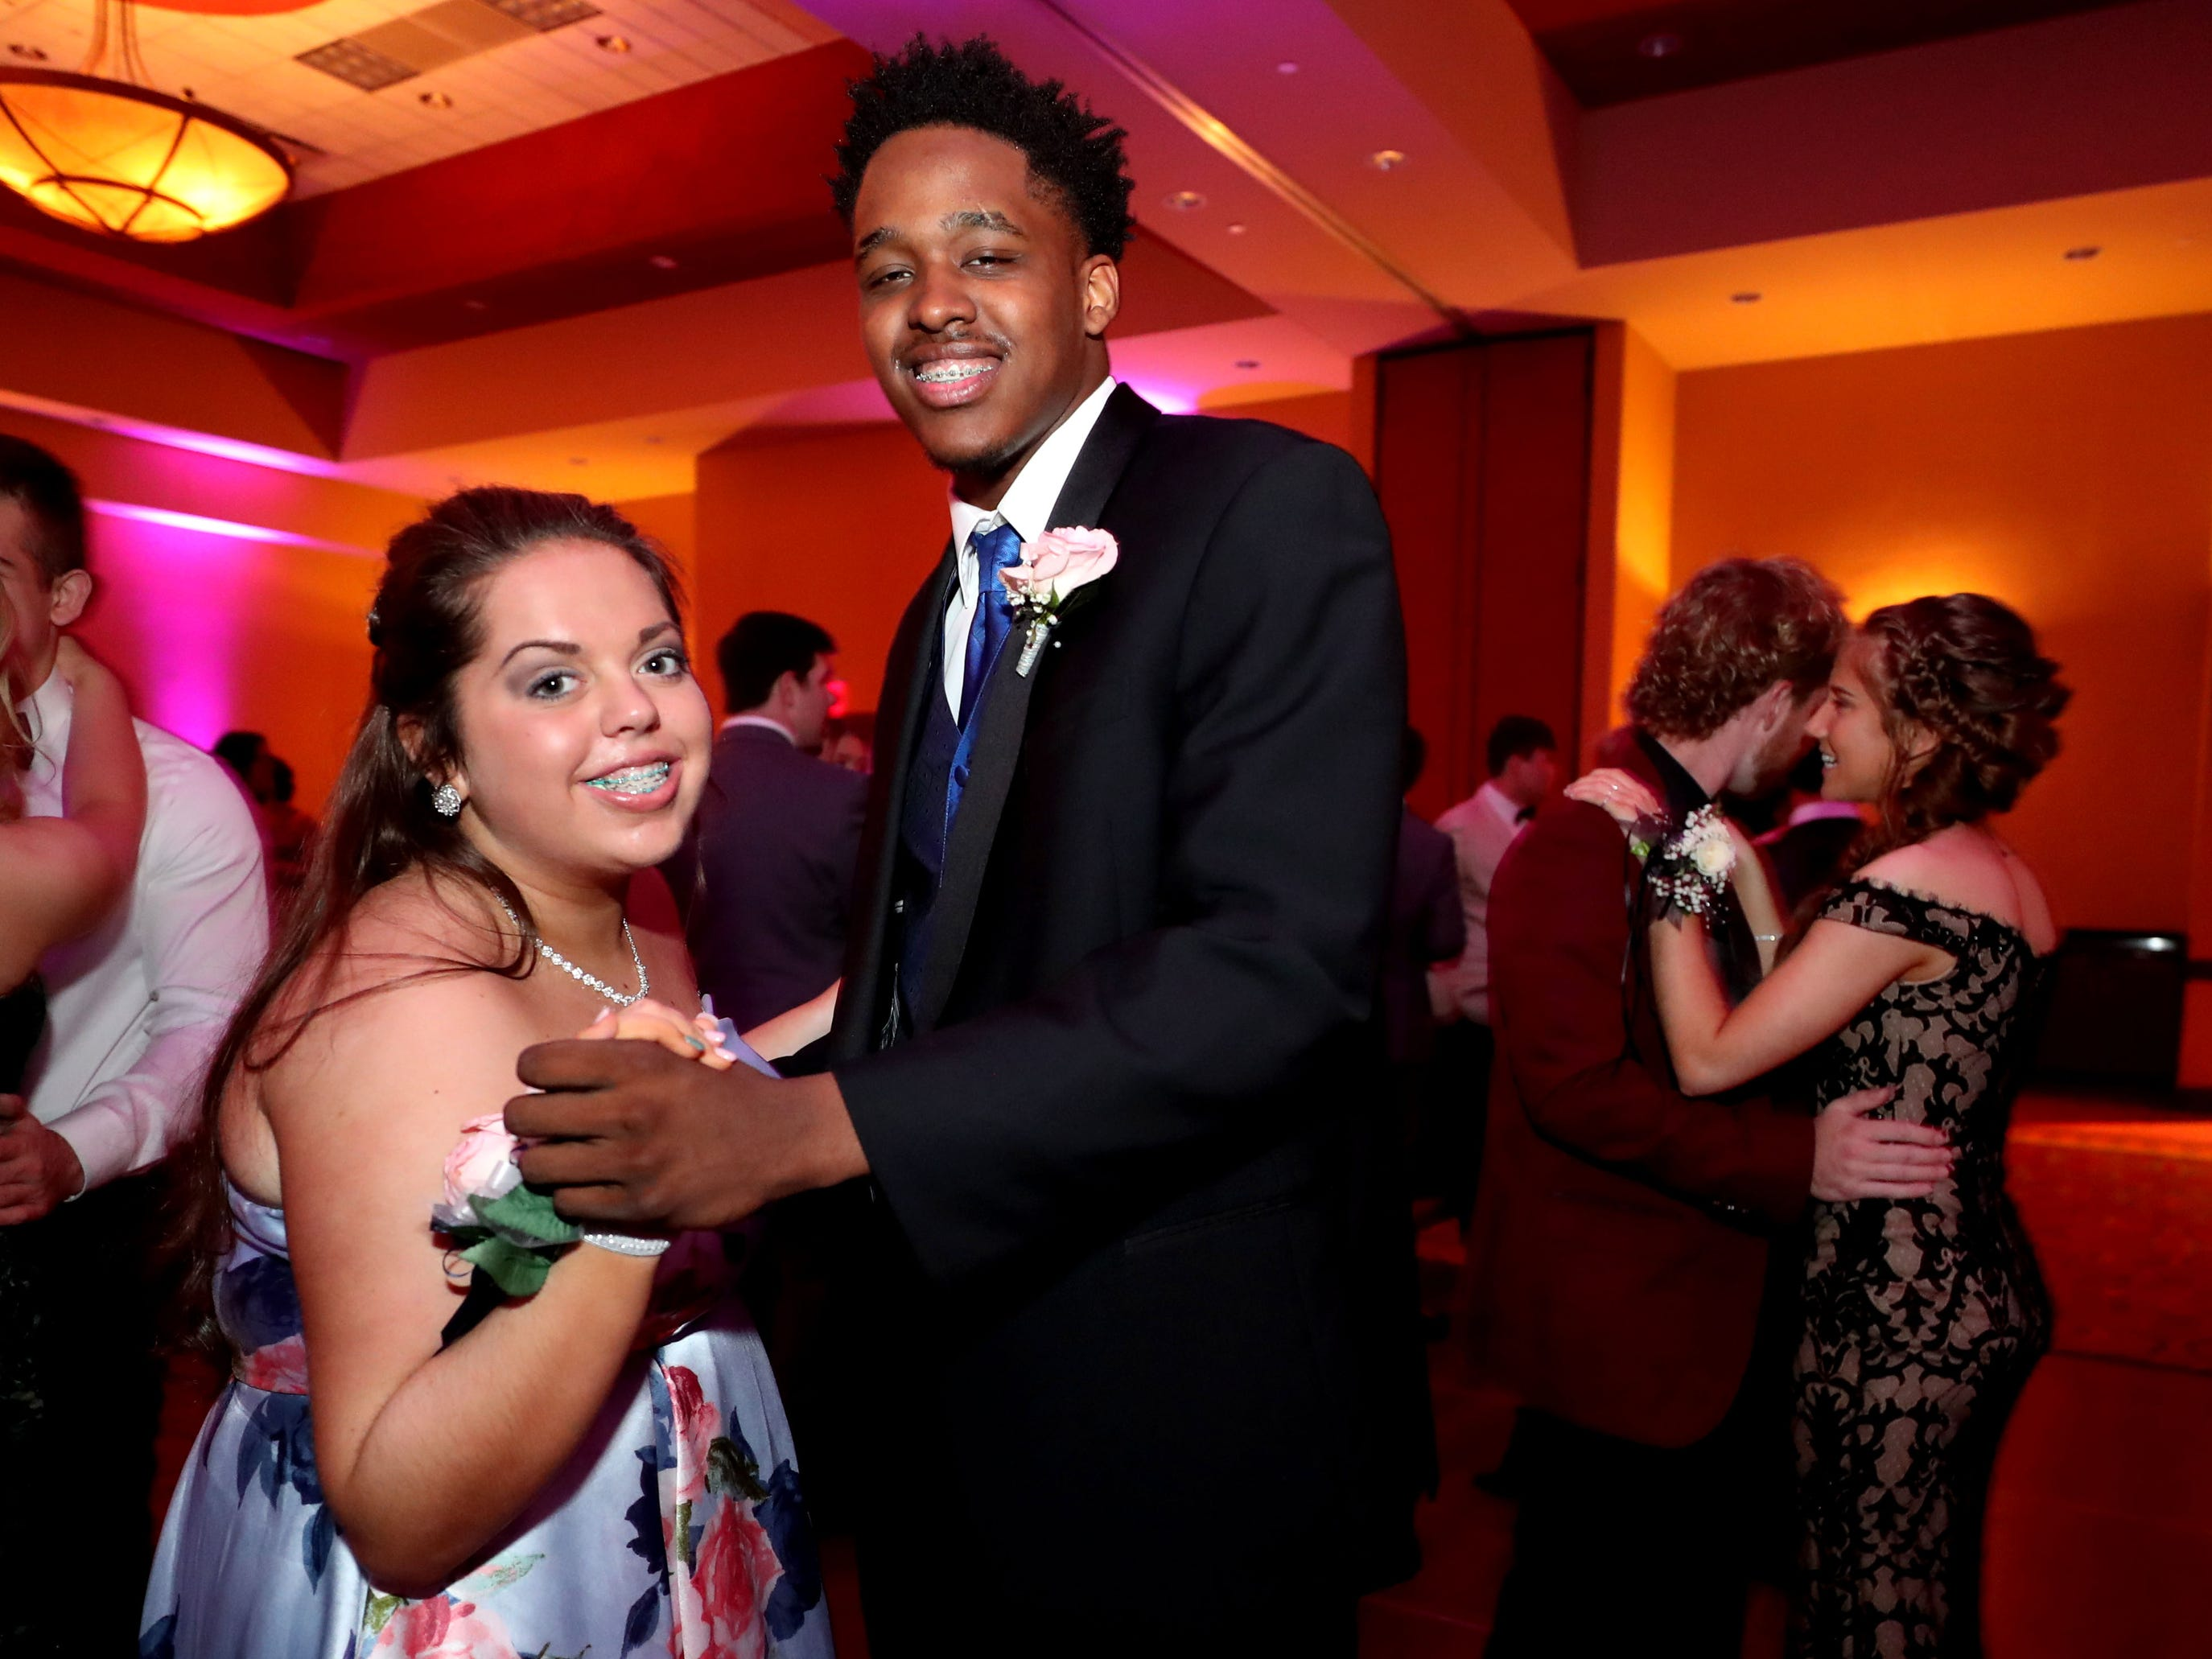 """Summer Cooper, left and DeMarious Stoudemire, right  dance to """"At Last"""" at Eagleville's Prom held at Embassy Suites, in Murfreesboro on Thursday April 5, 2019."""